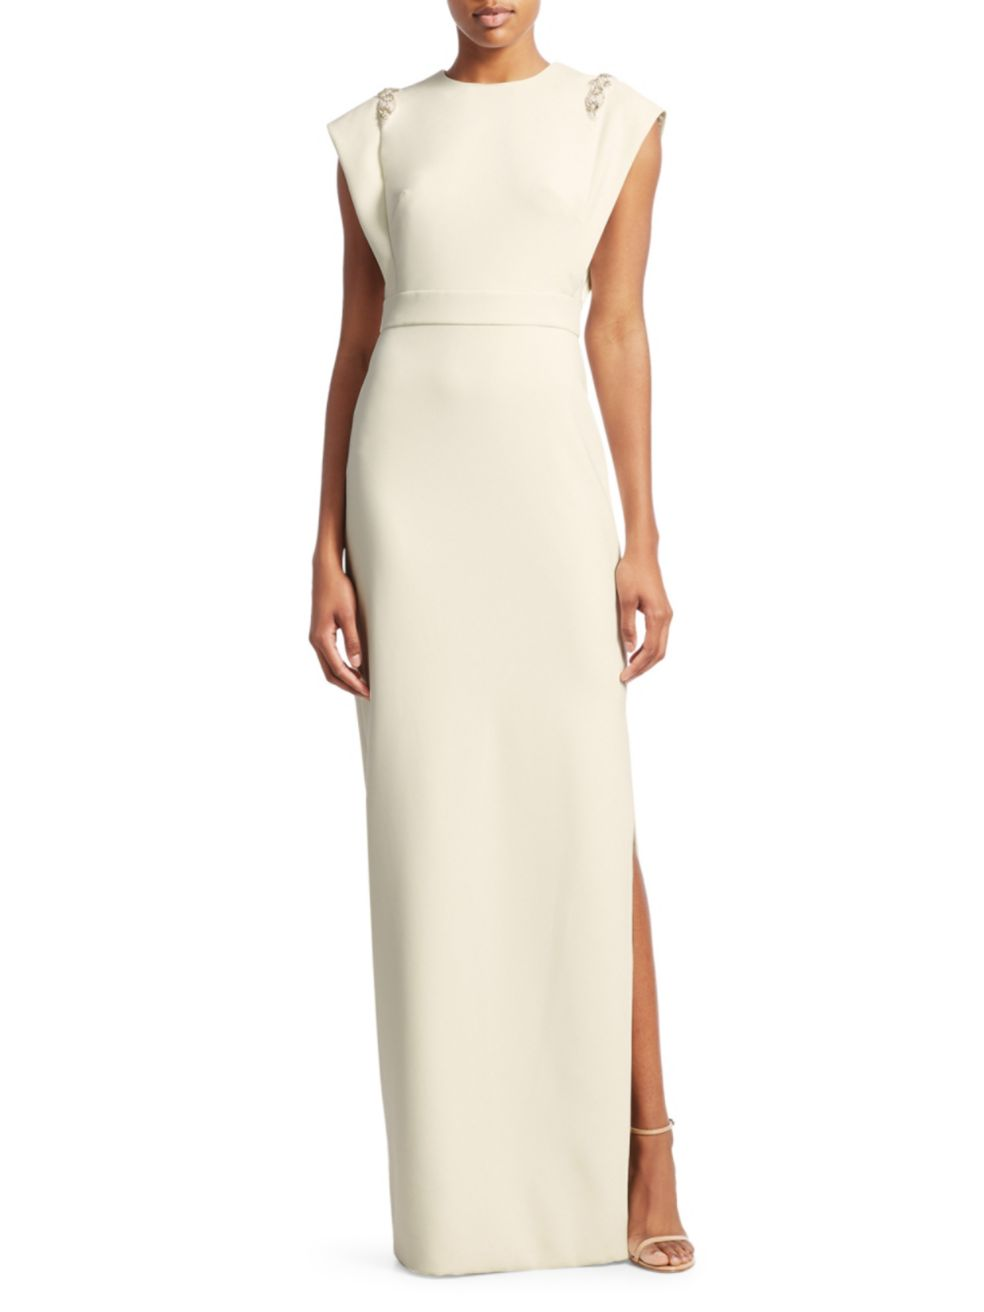 Crepe Jeweled Appliqué Gown - $995.00Saks